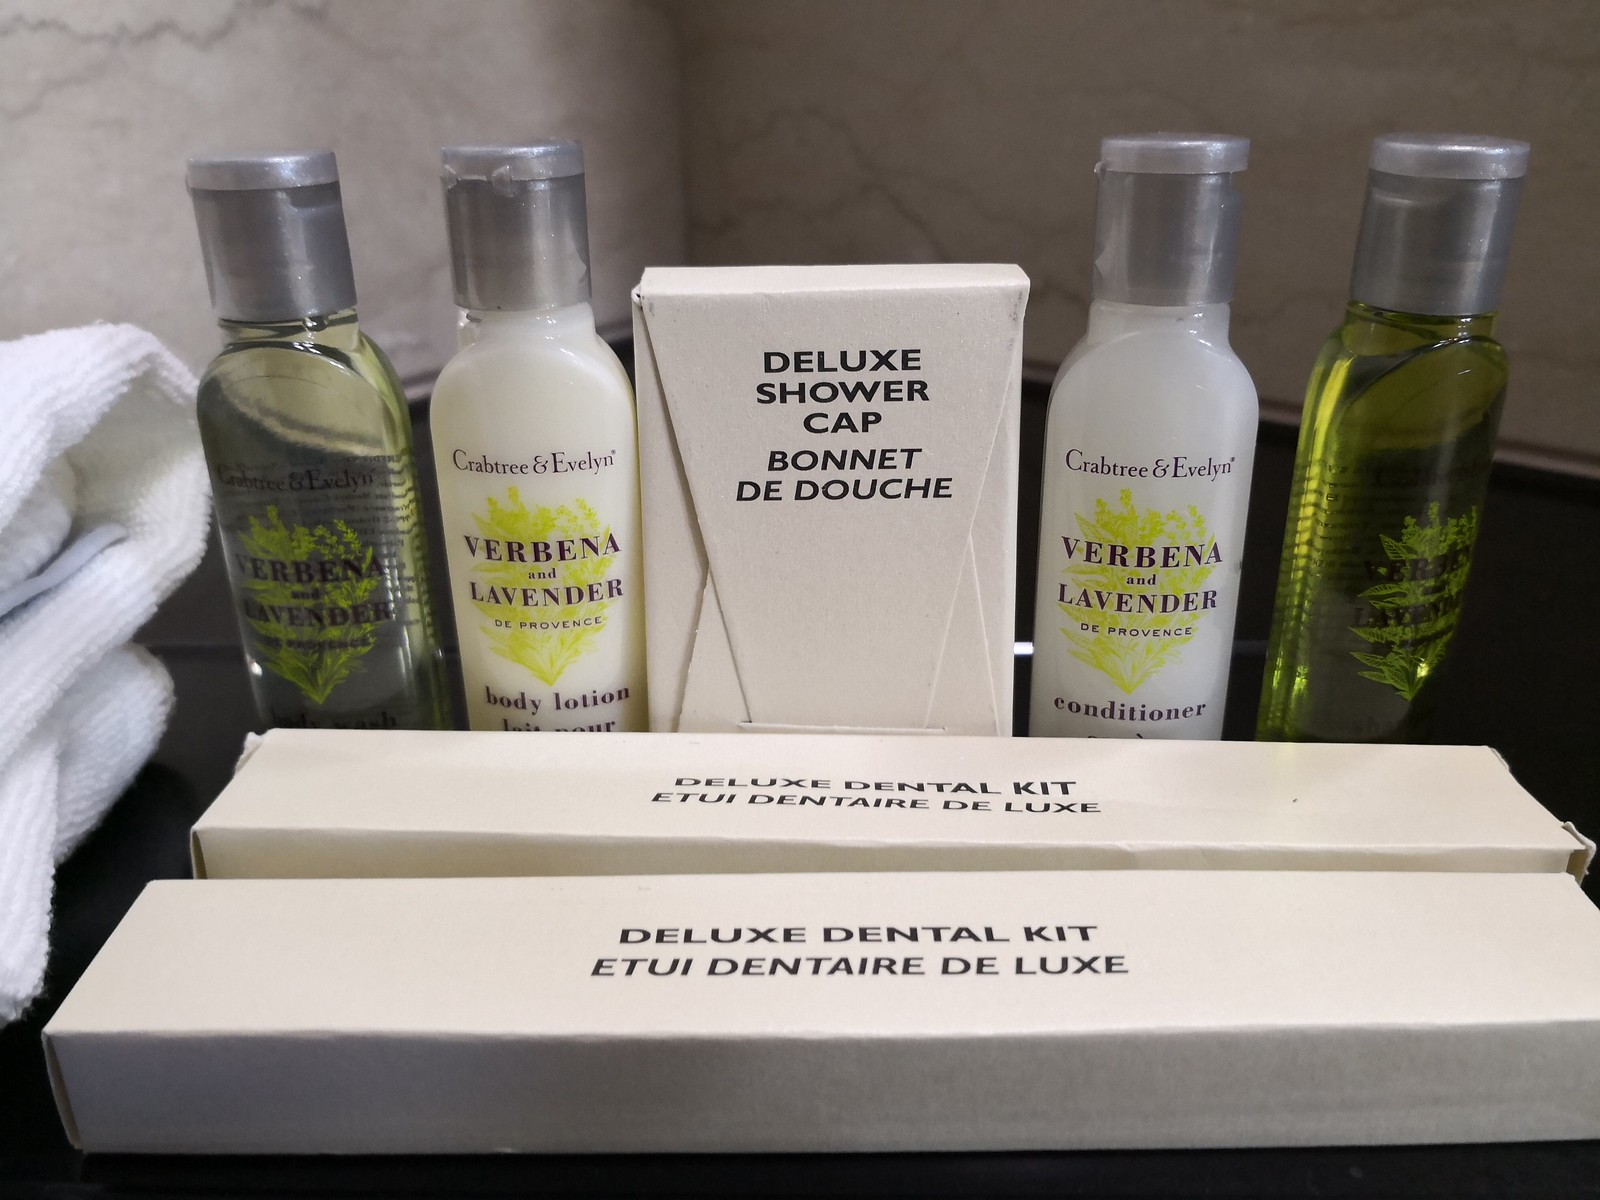 Crabtree & Evelyn amenities